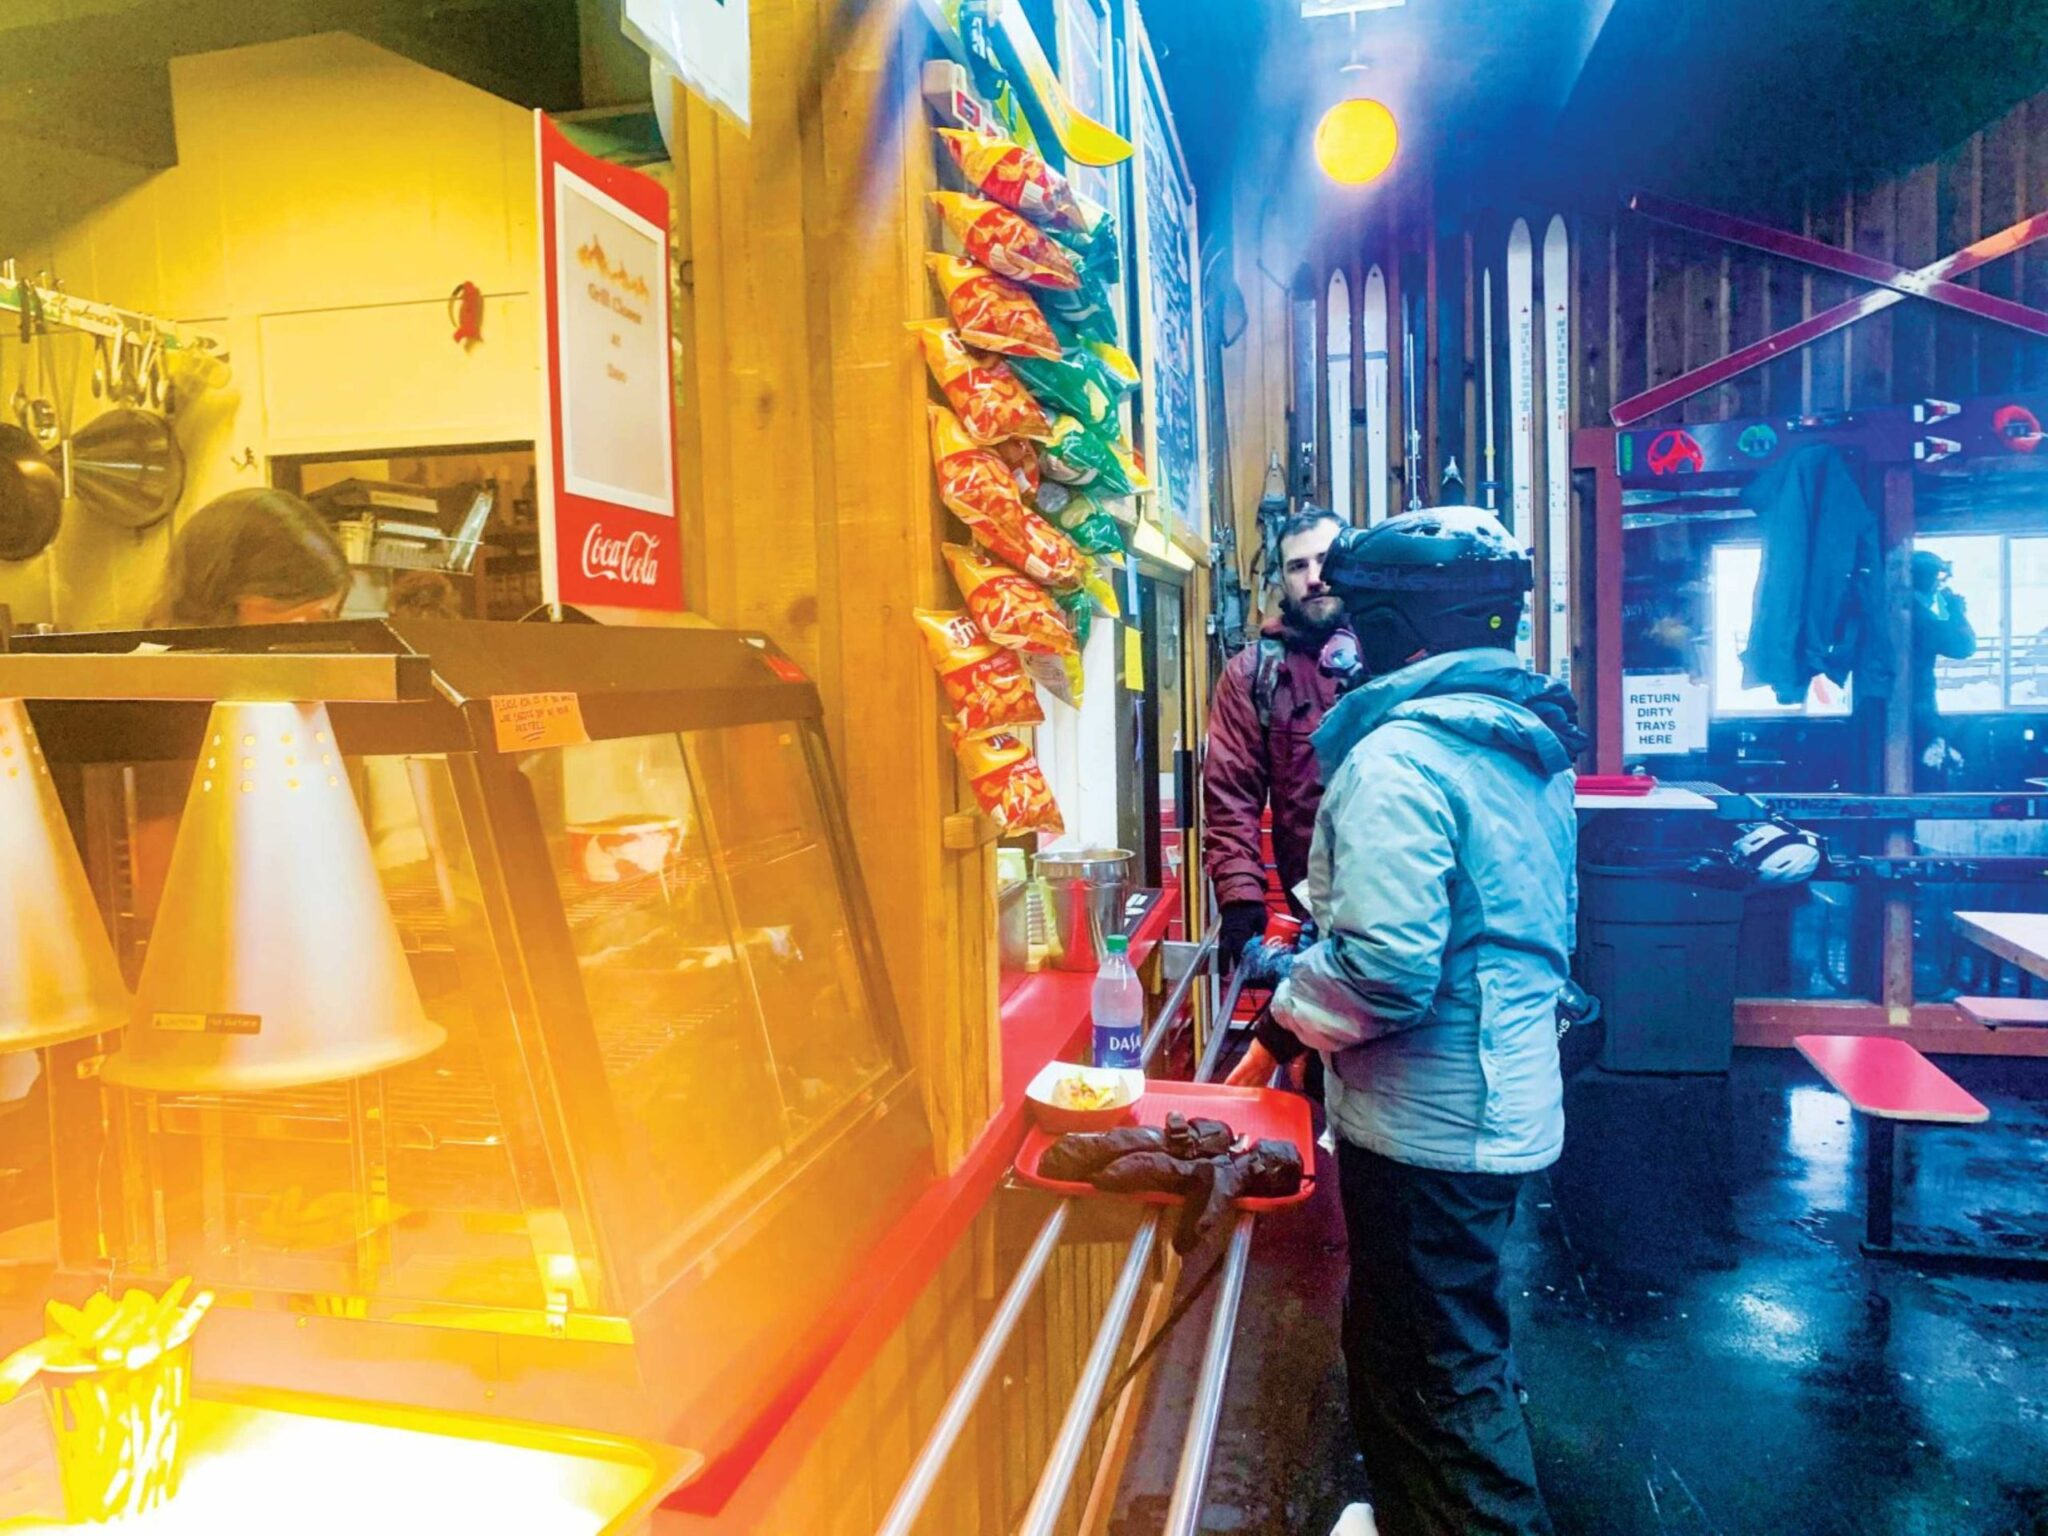 Snowboarder ordering food after snow-boarding.